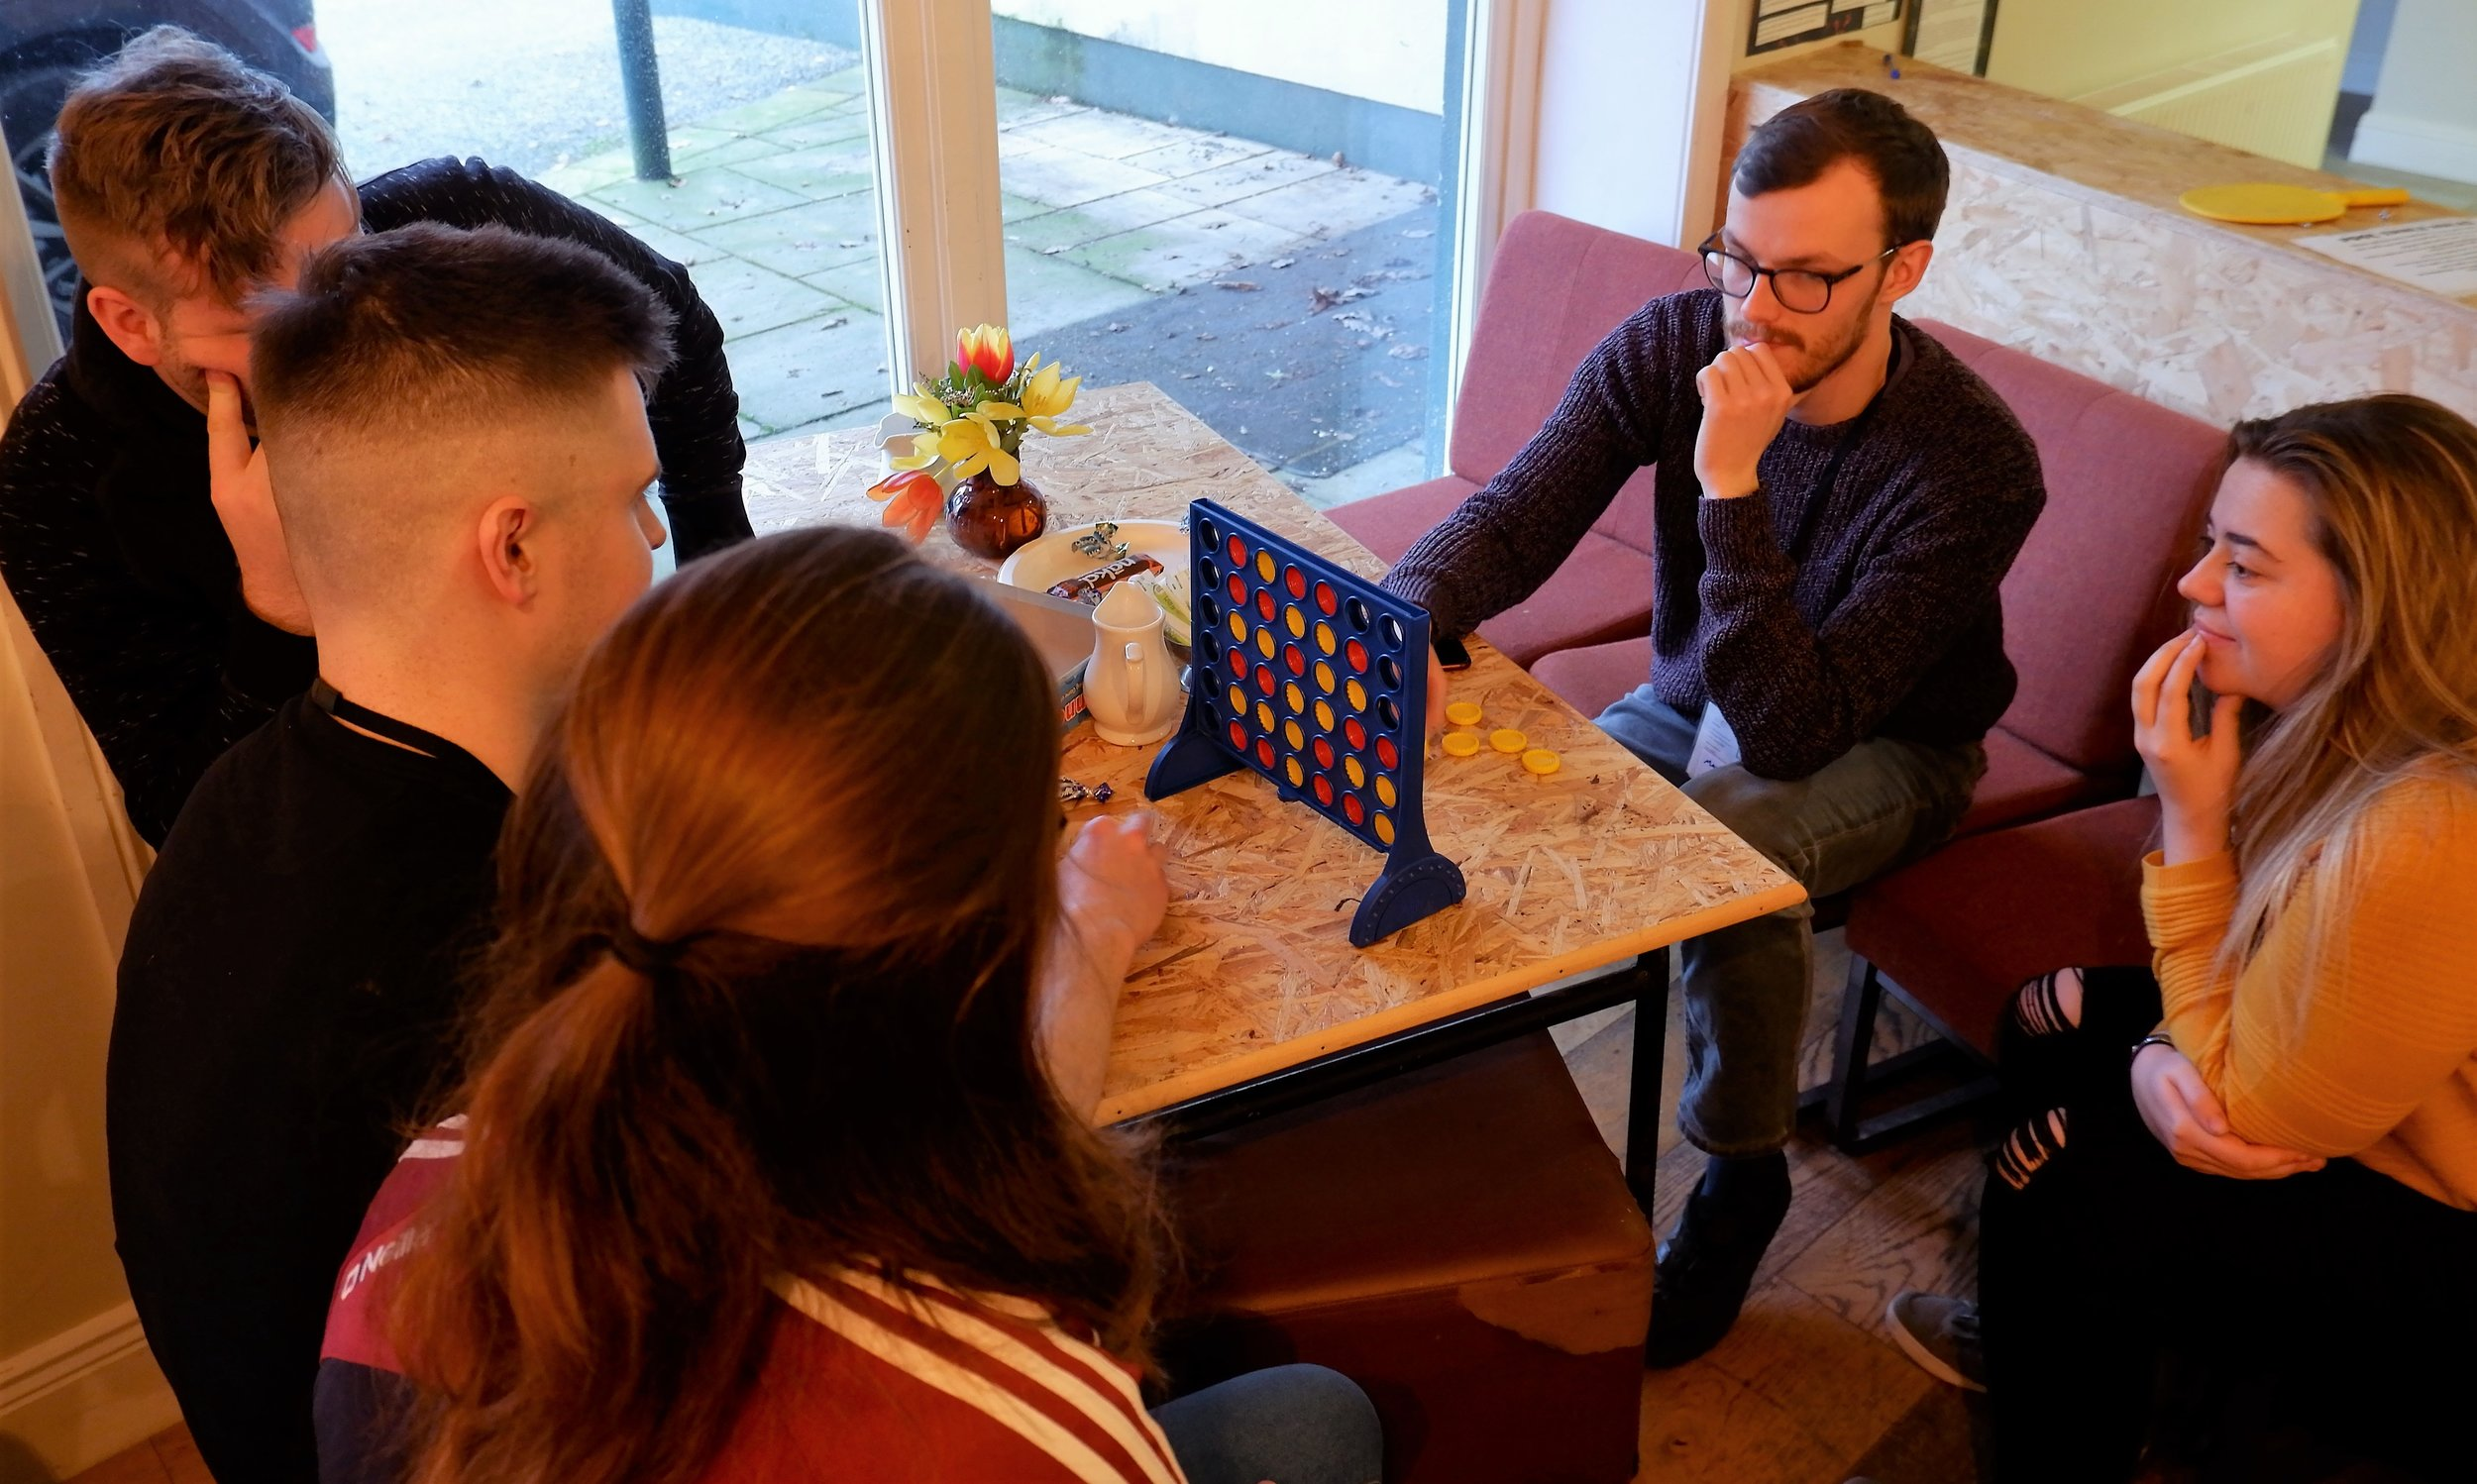 Some youth leaders playing a serious game of Connect 4 in the cafe!